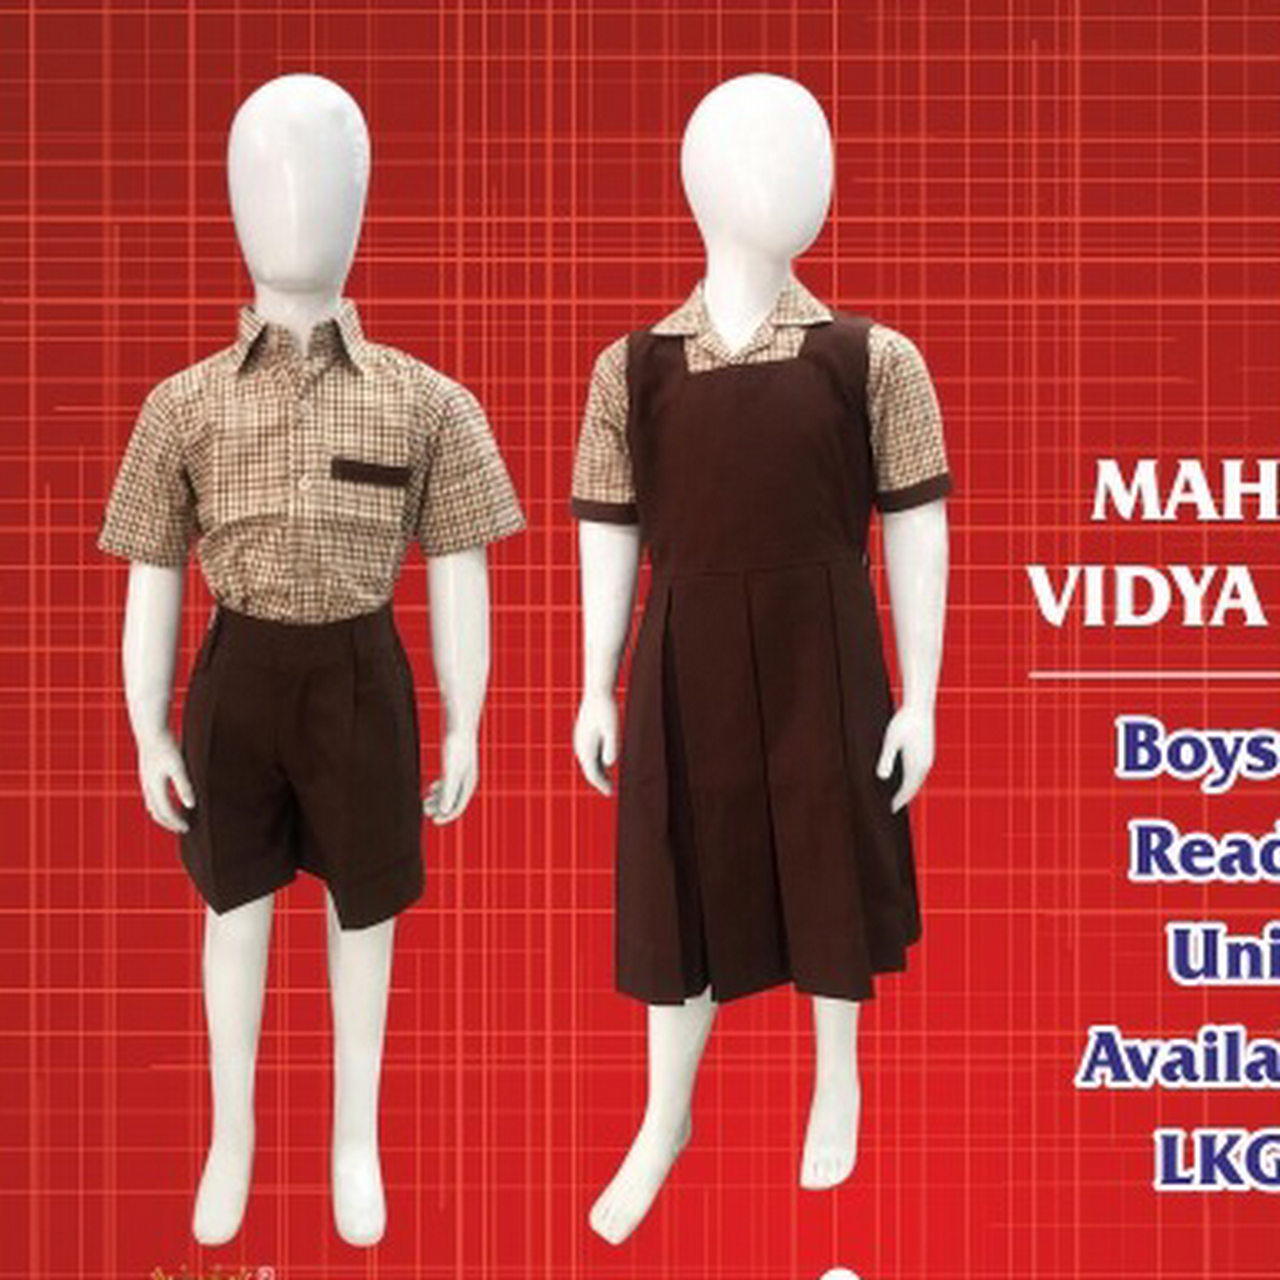 8337f57bb1a0ab Sumatisons Readymade & Uniforms - Best Uniform Store in Chennai